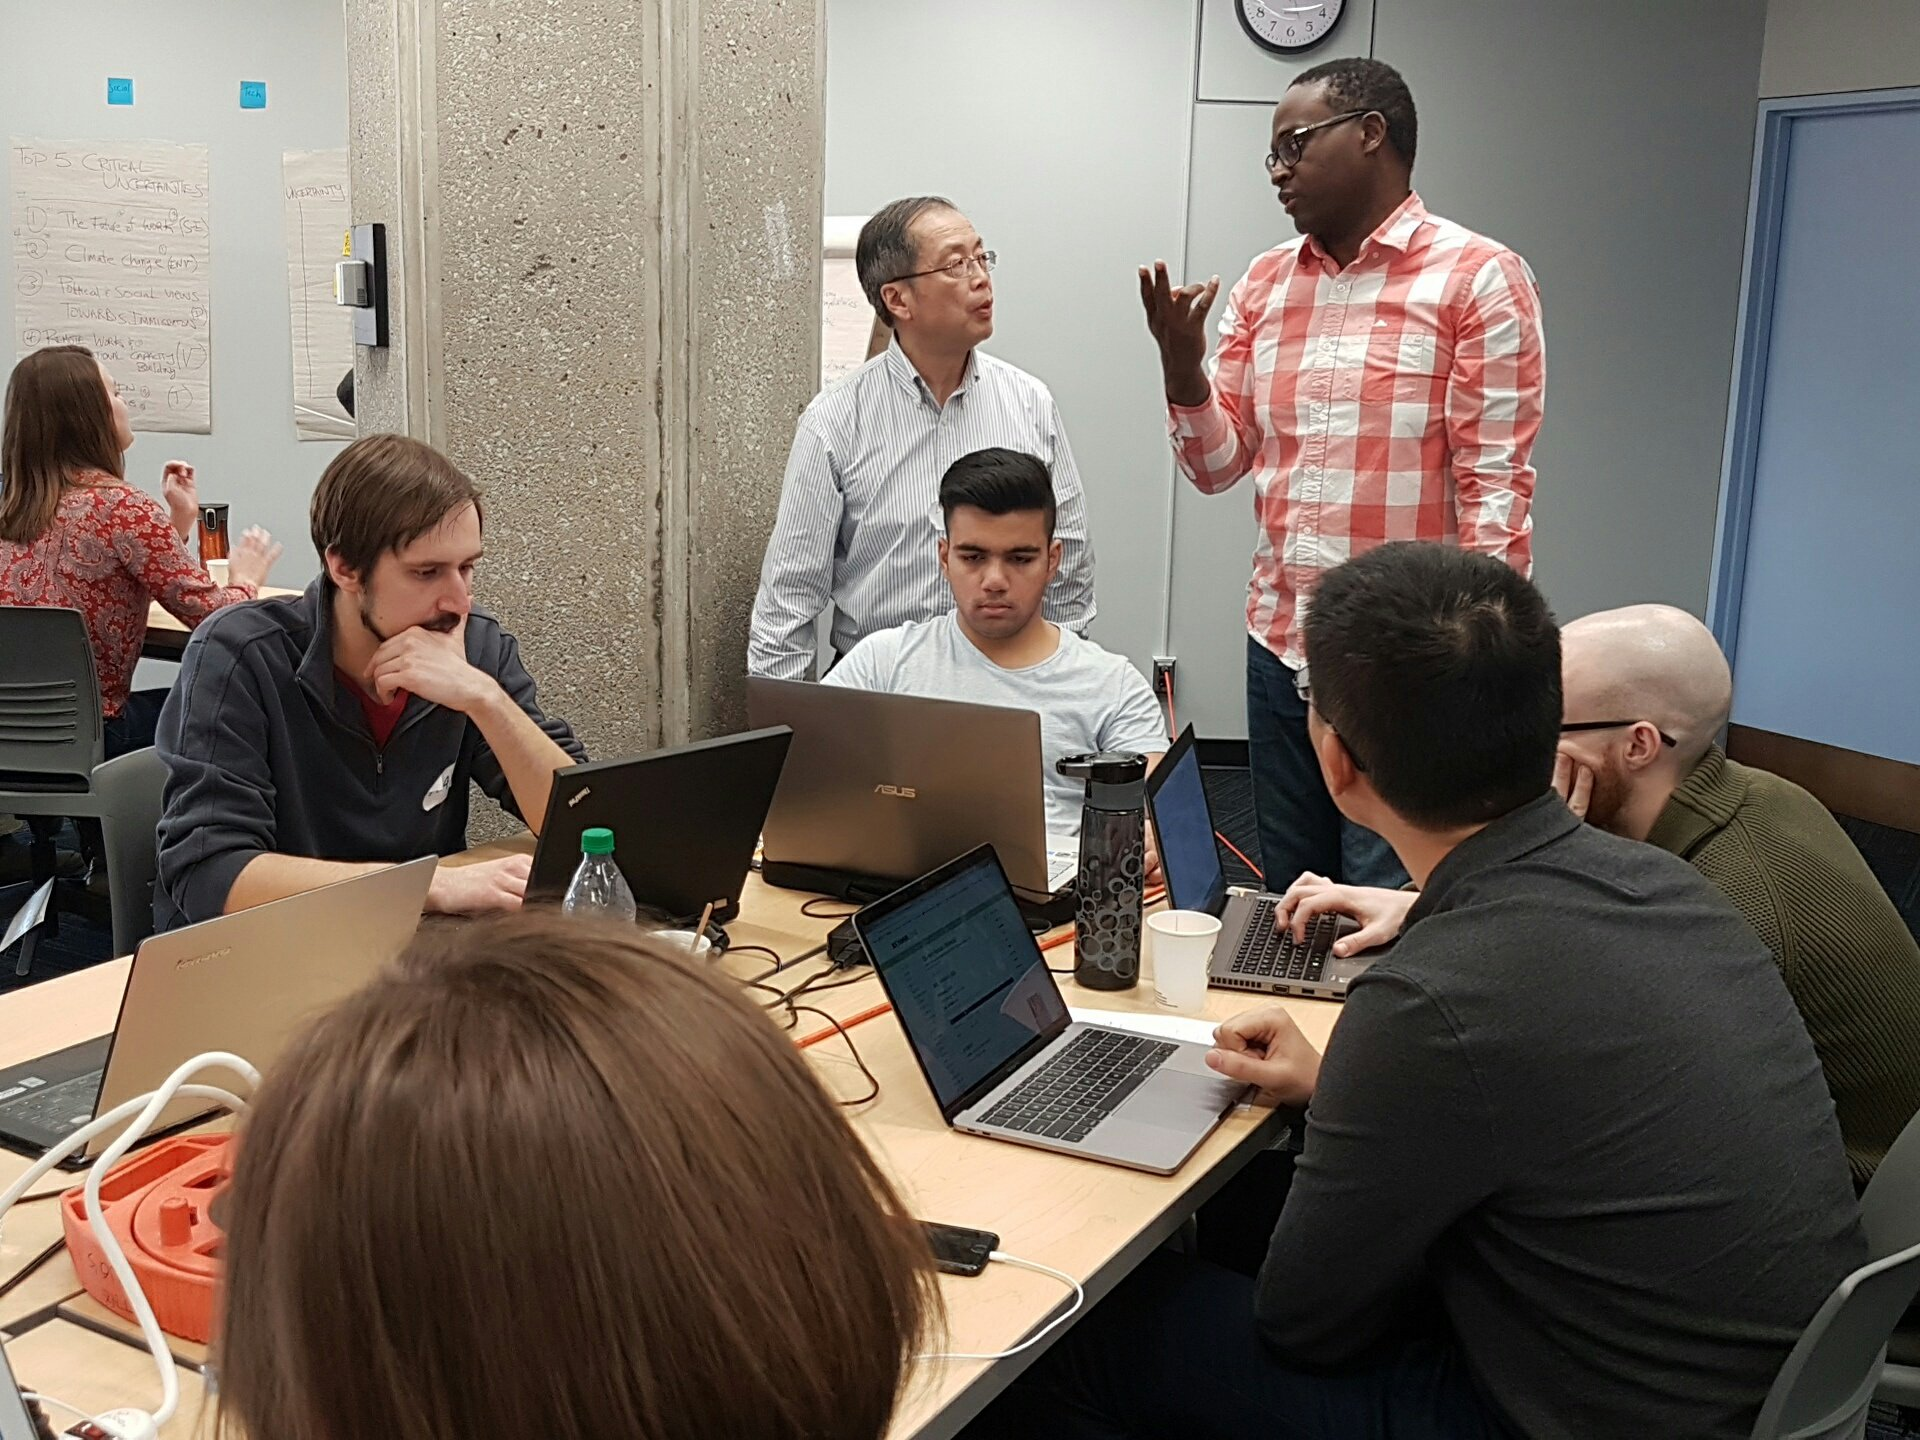 """""""We have an hour, it's time to GO!"""" - Mac tells the #Dream2030 team, hard at work! #OpenDataDay #CodeAcrossTO https://t.co/FcEdTs6KFX"""